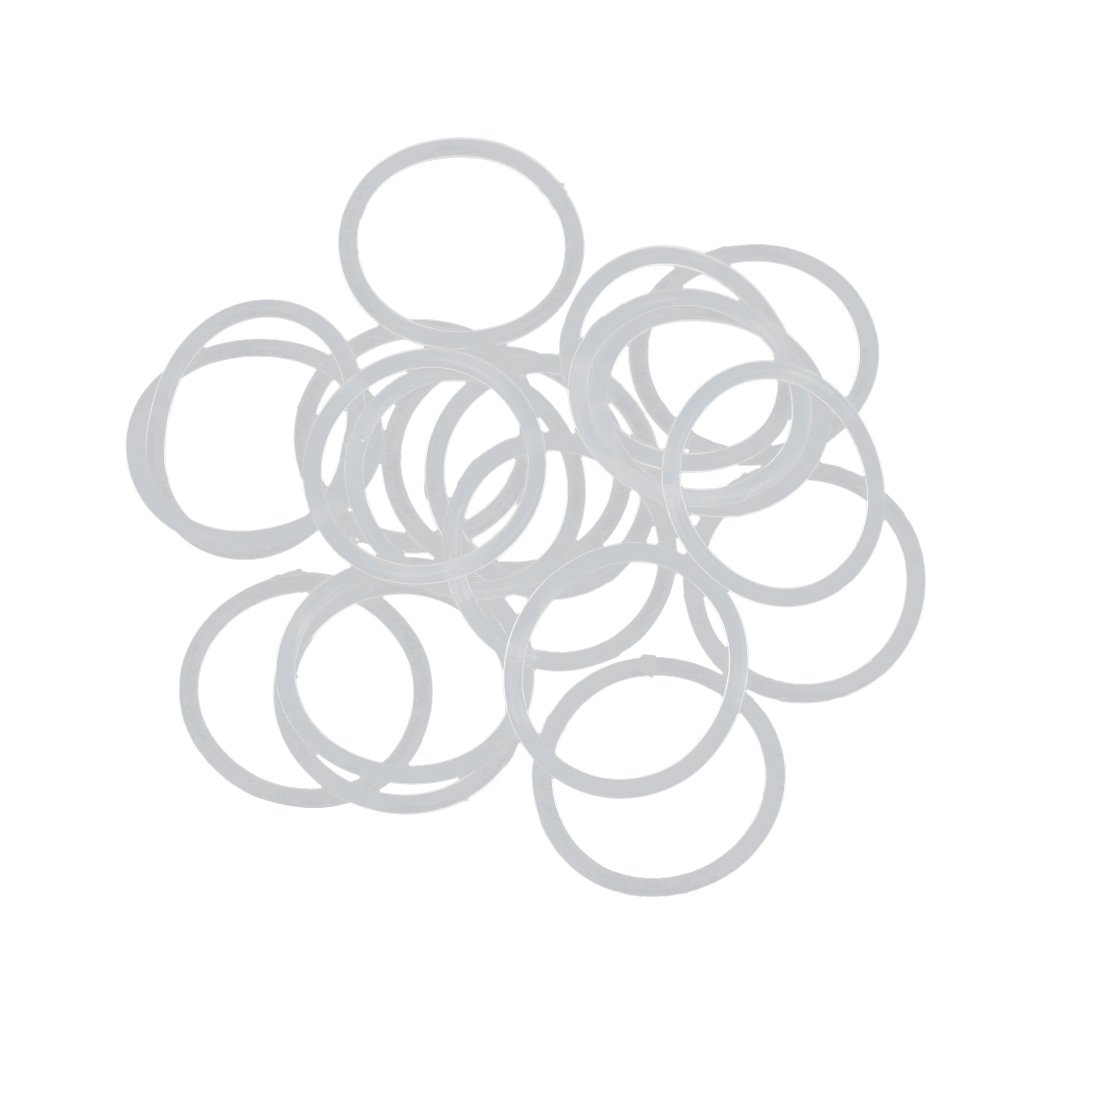 20pcs White Silicone Rubber O-Ring Seal Gasket Washer 20 x 1.5mm for Car